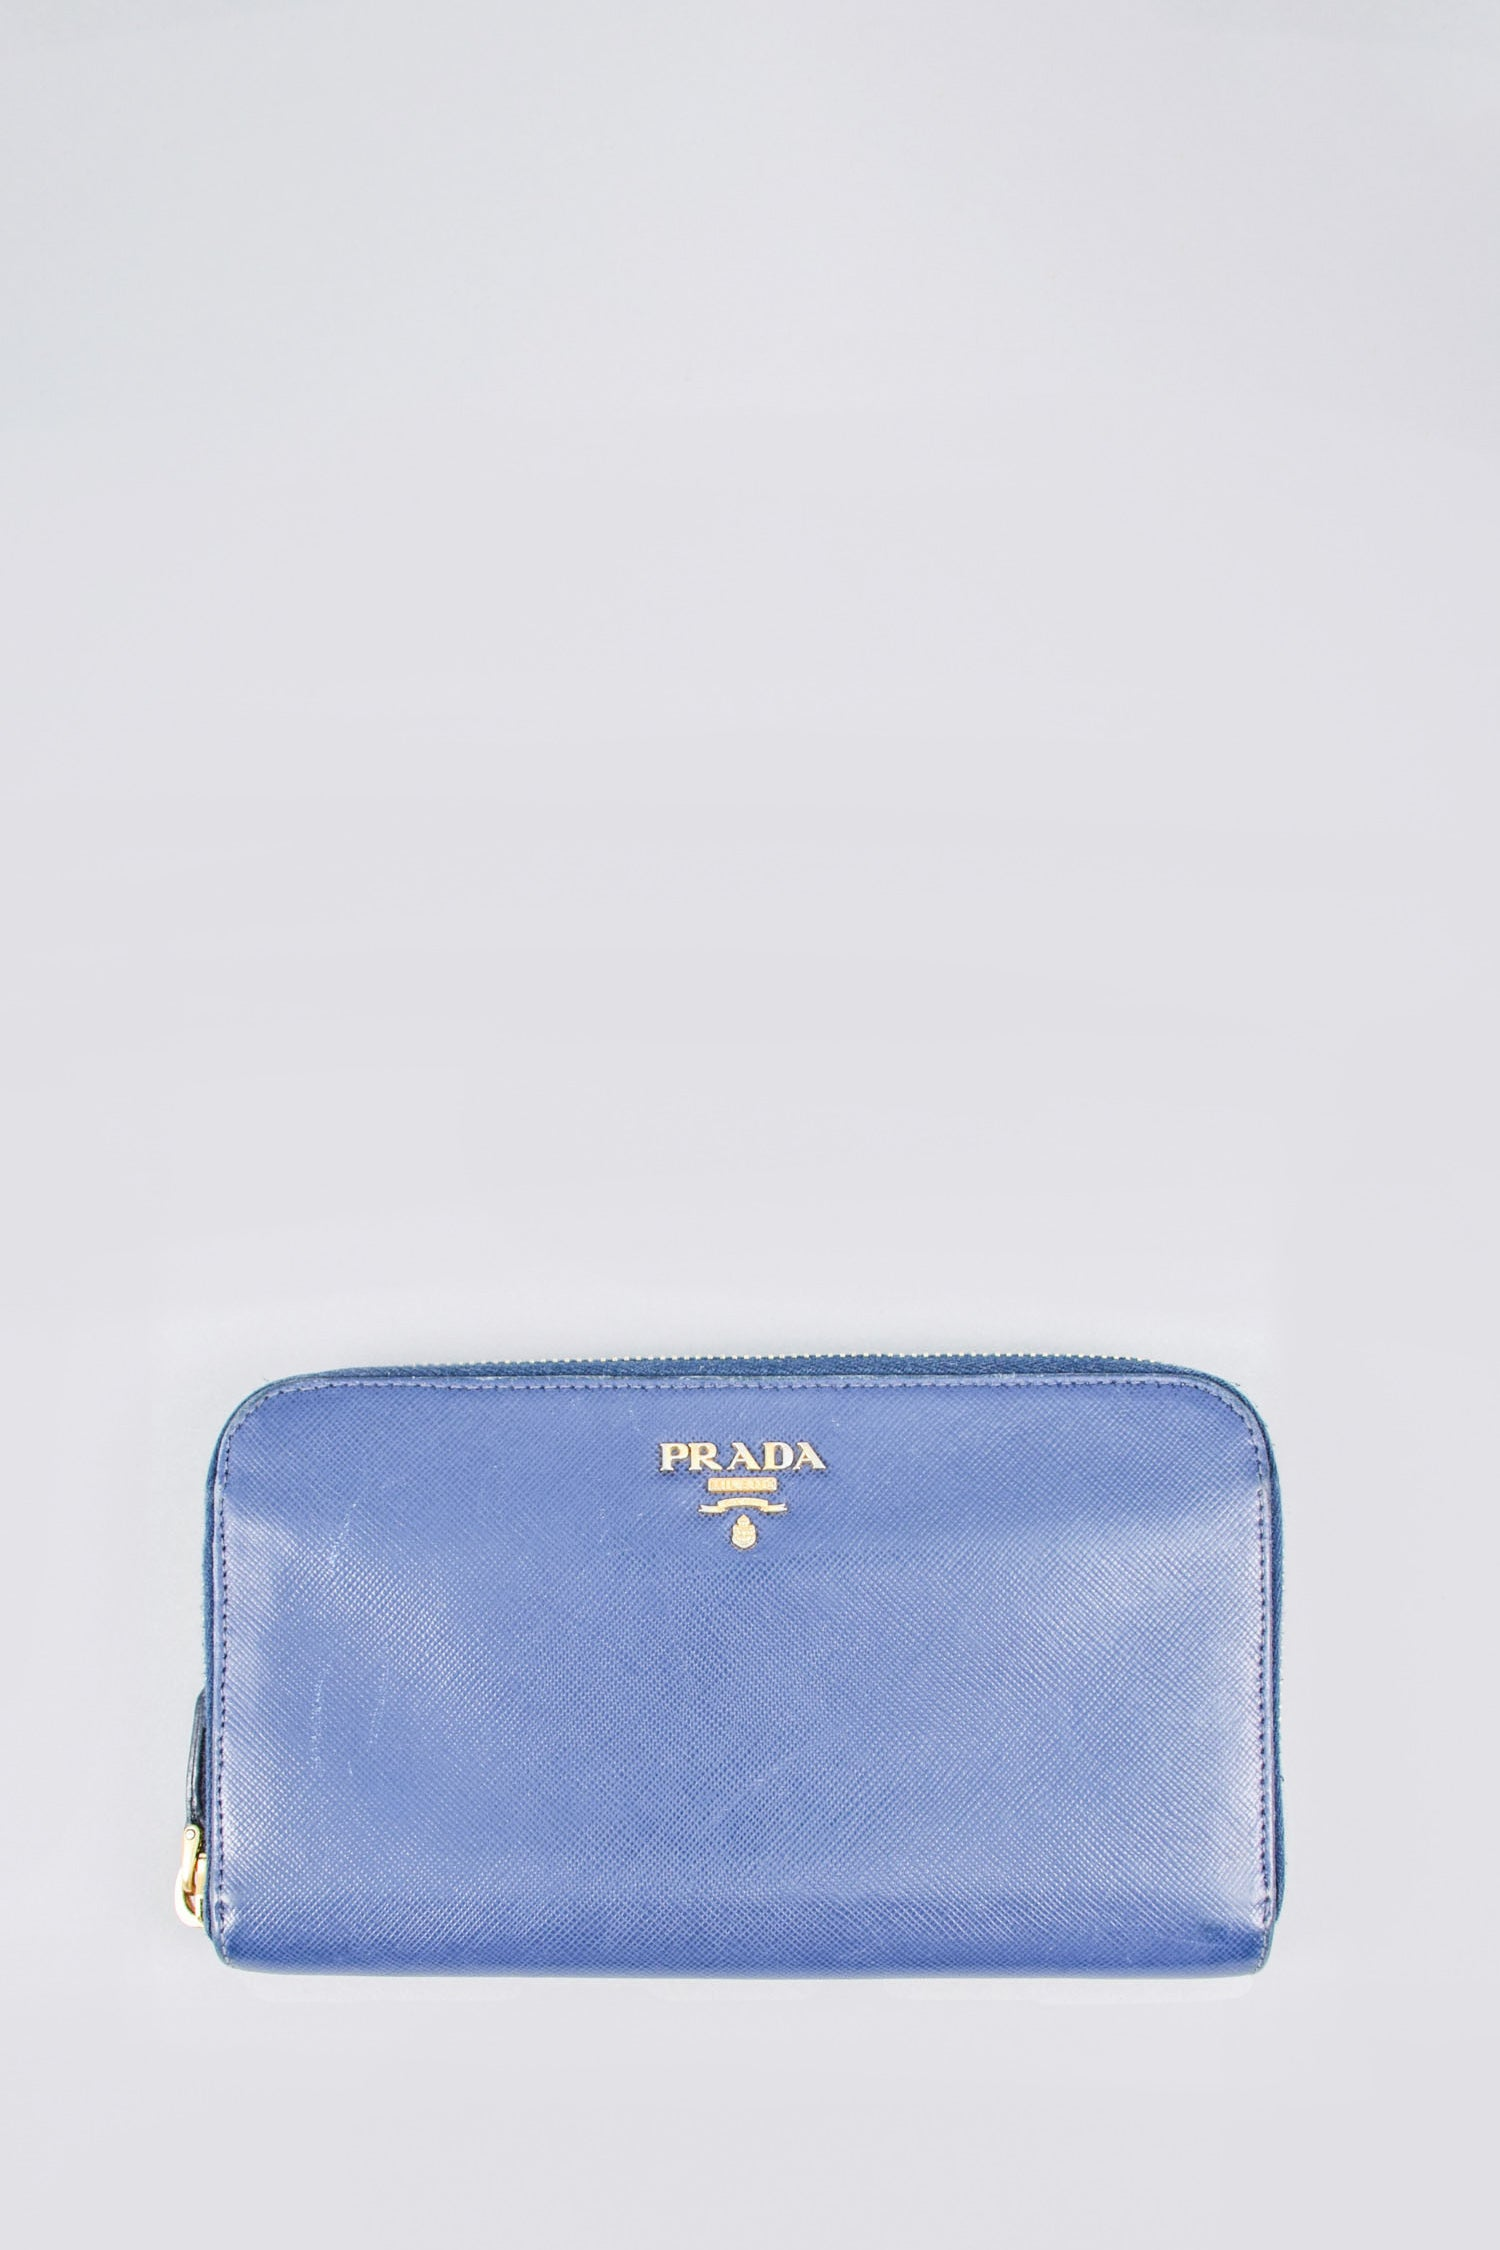 Prada Navy Saffiano Zip Around Wallet